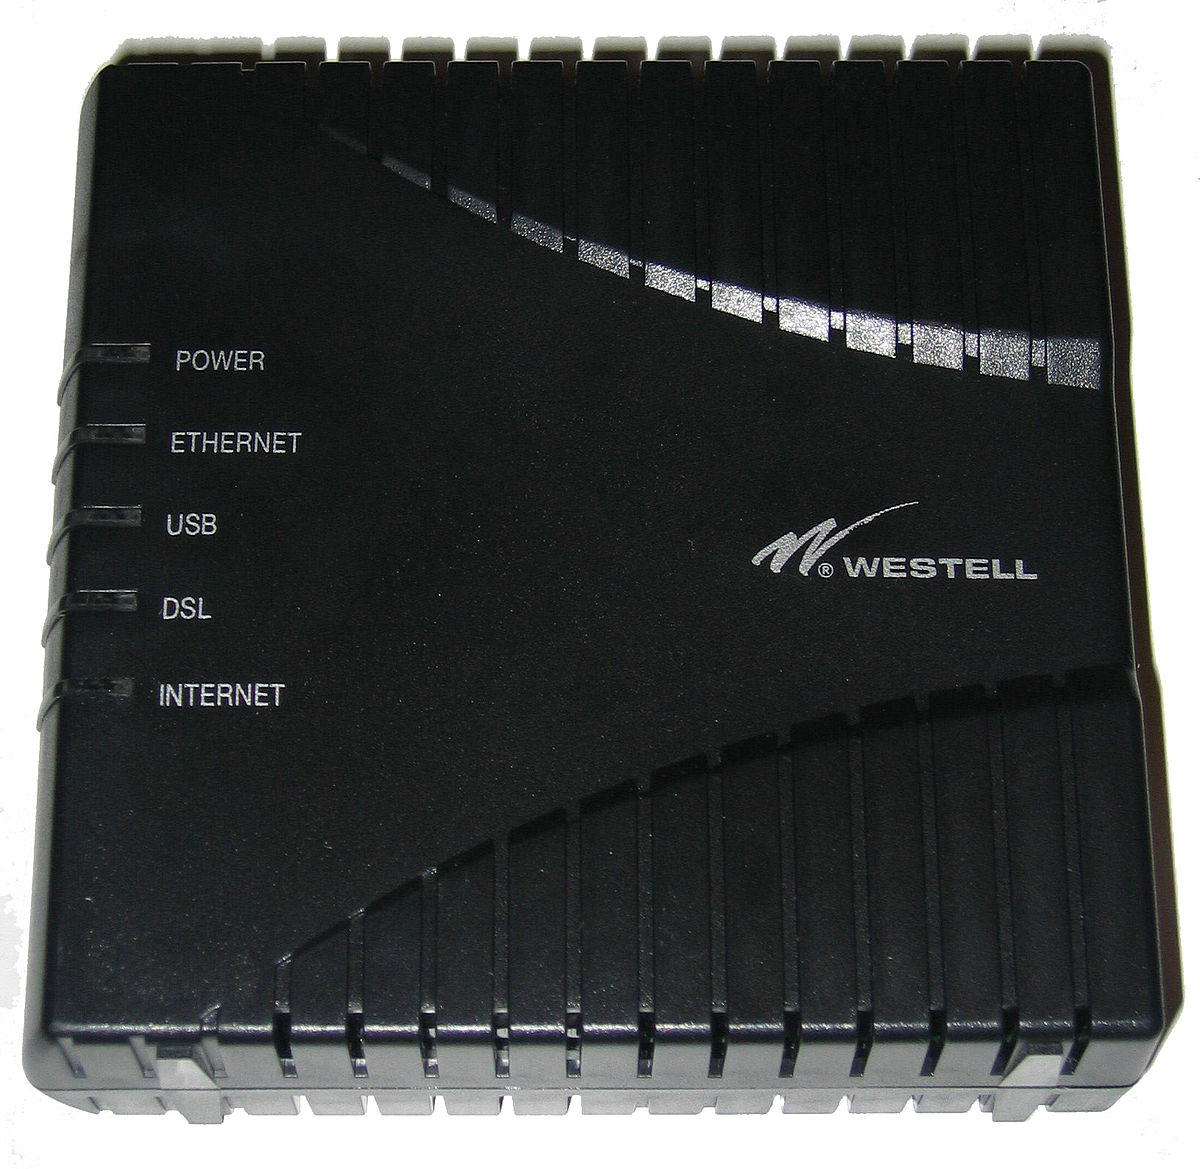 Dsl Modem Wikipedia Power Over Ethernet Is A Technology That Allows Devices Such